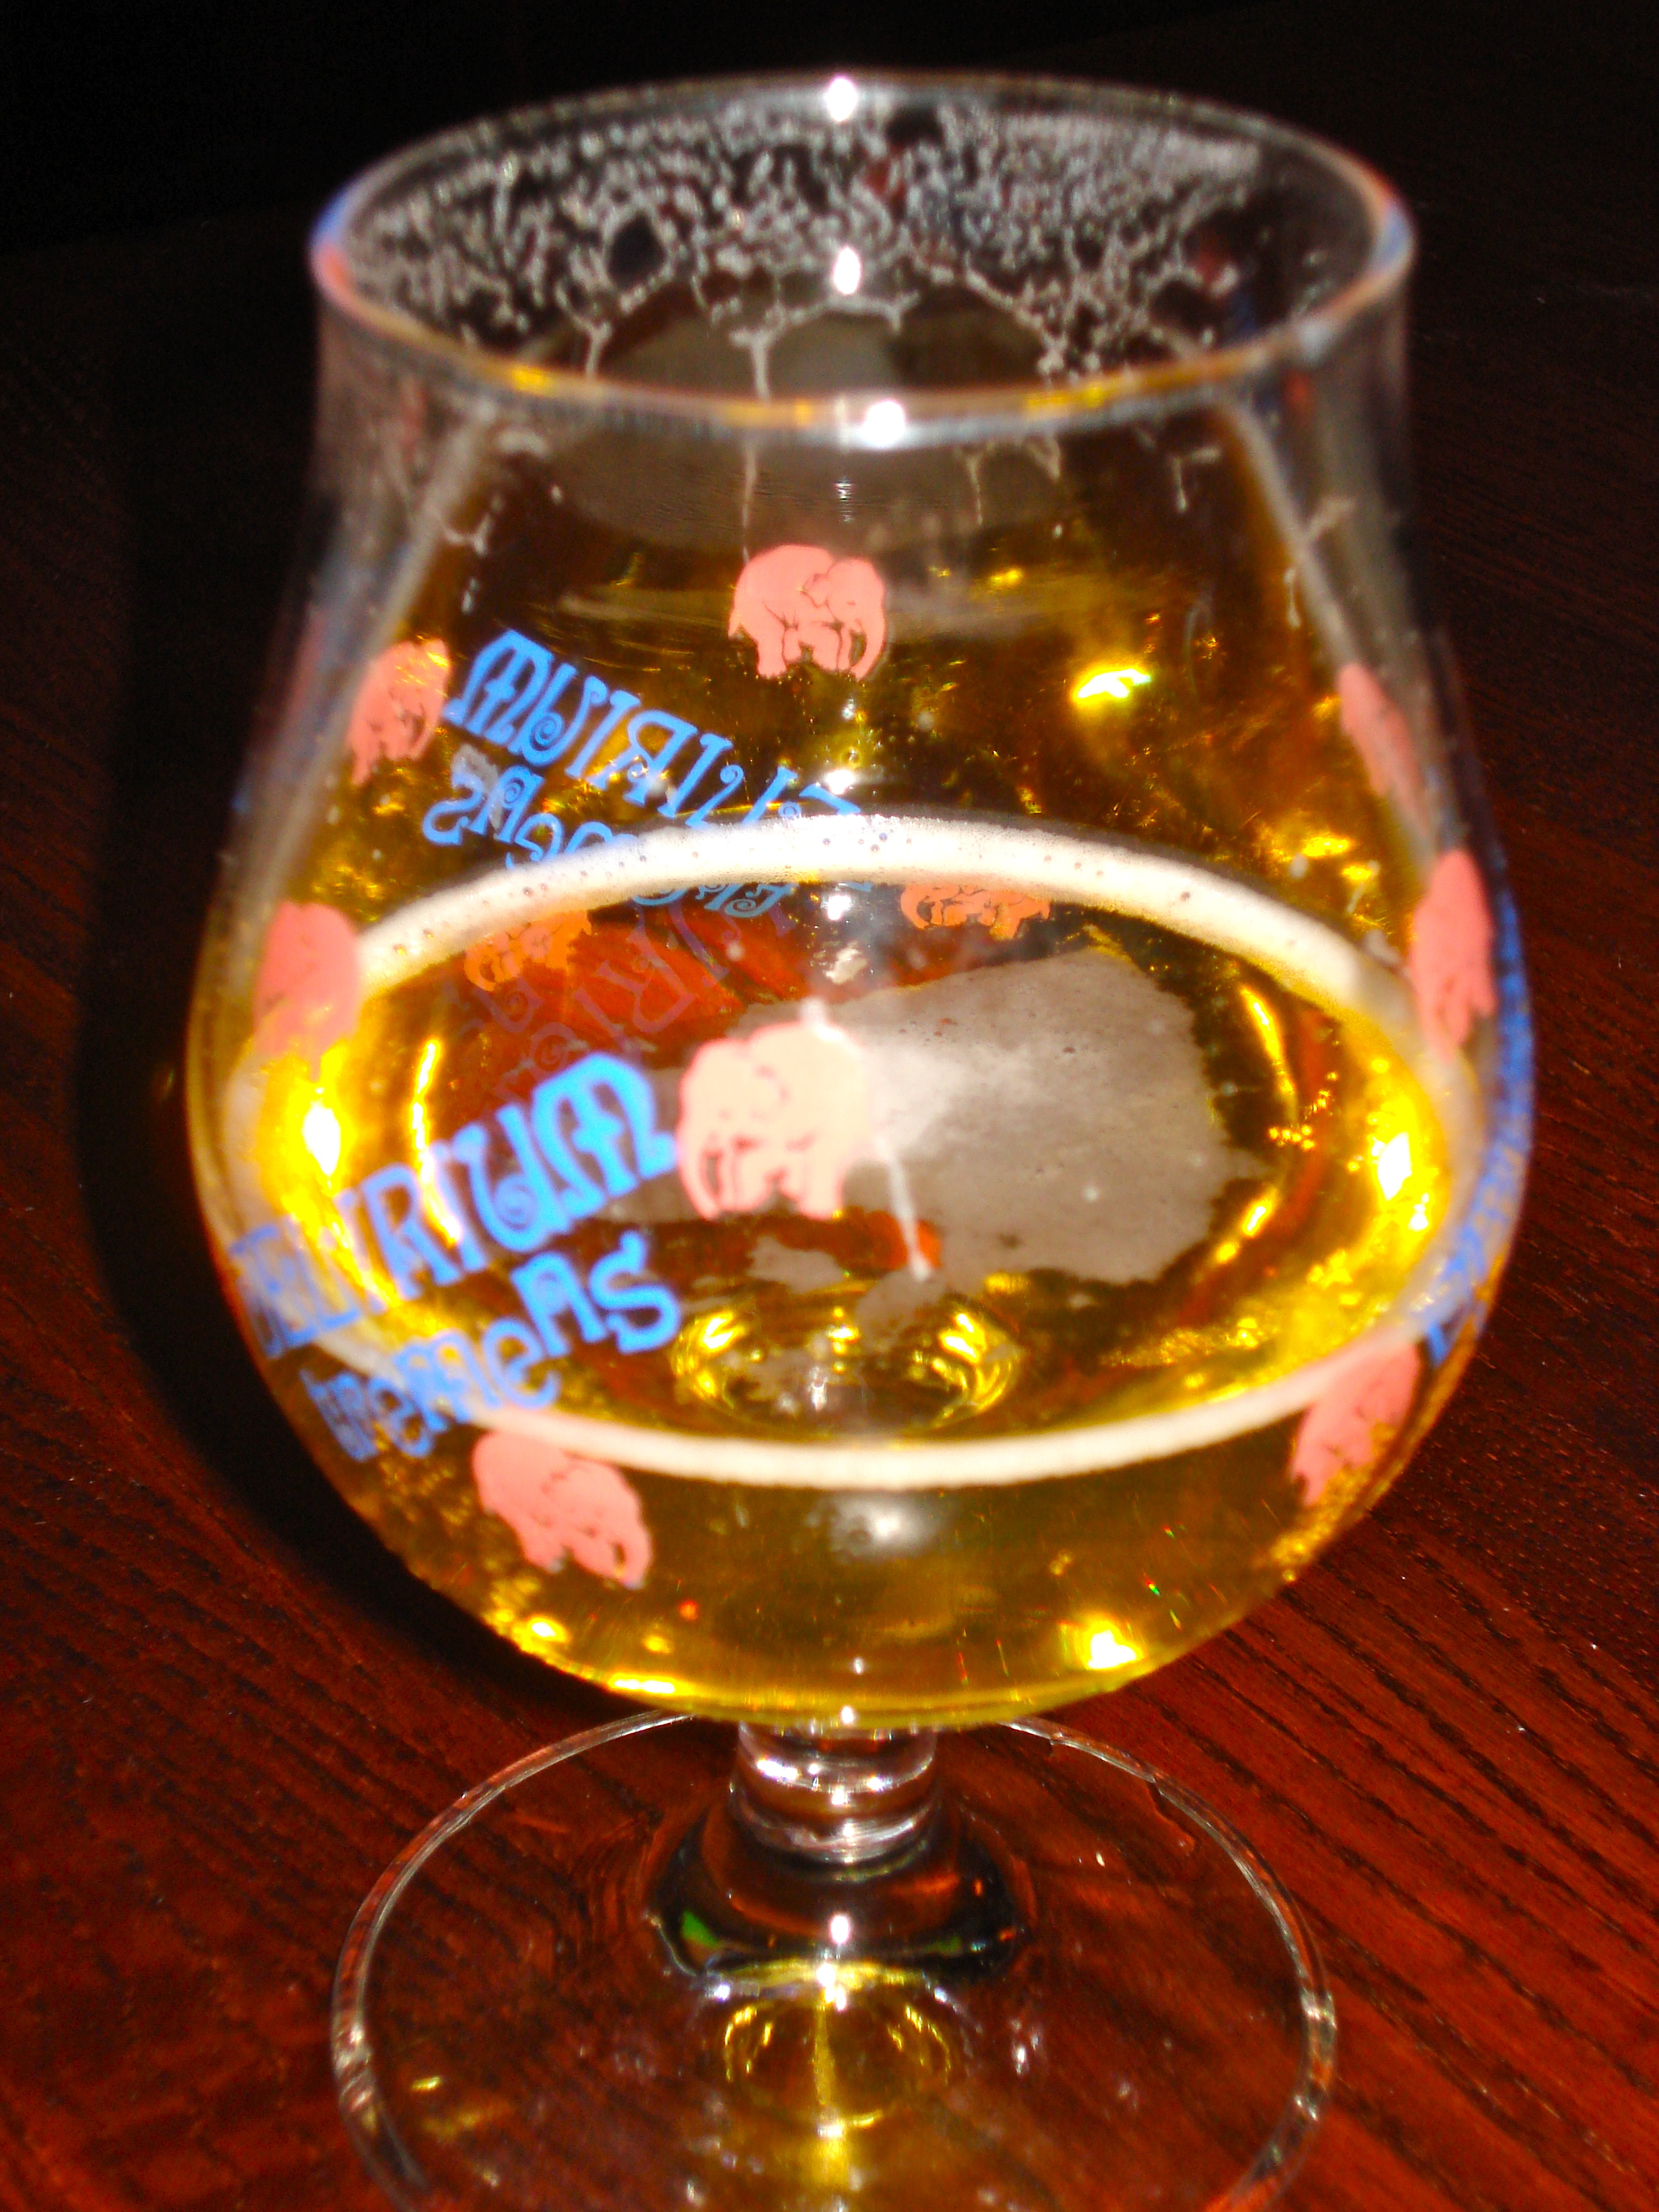 This is not my glass, as I do not drink beer.  However, I love the pink elephants on the glass, and therefore took a picture.